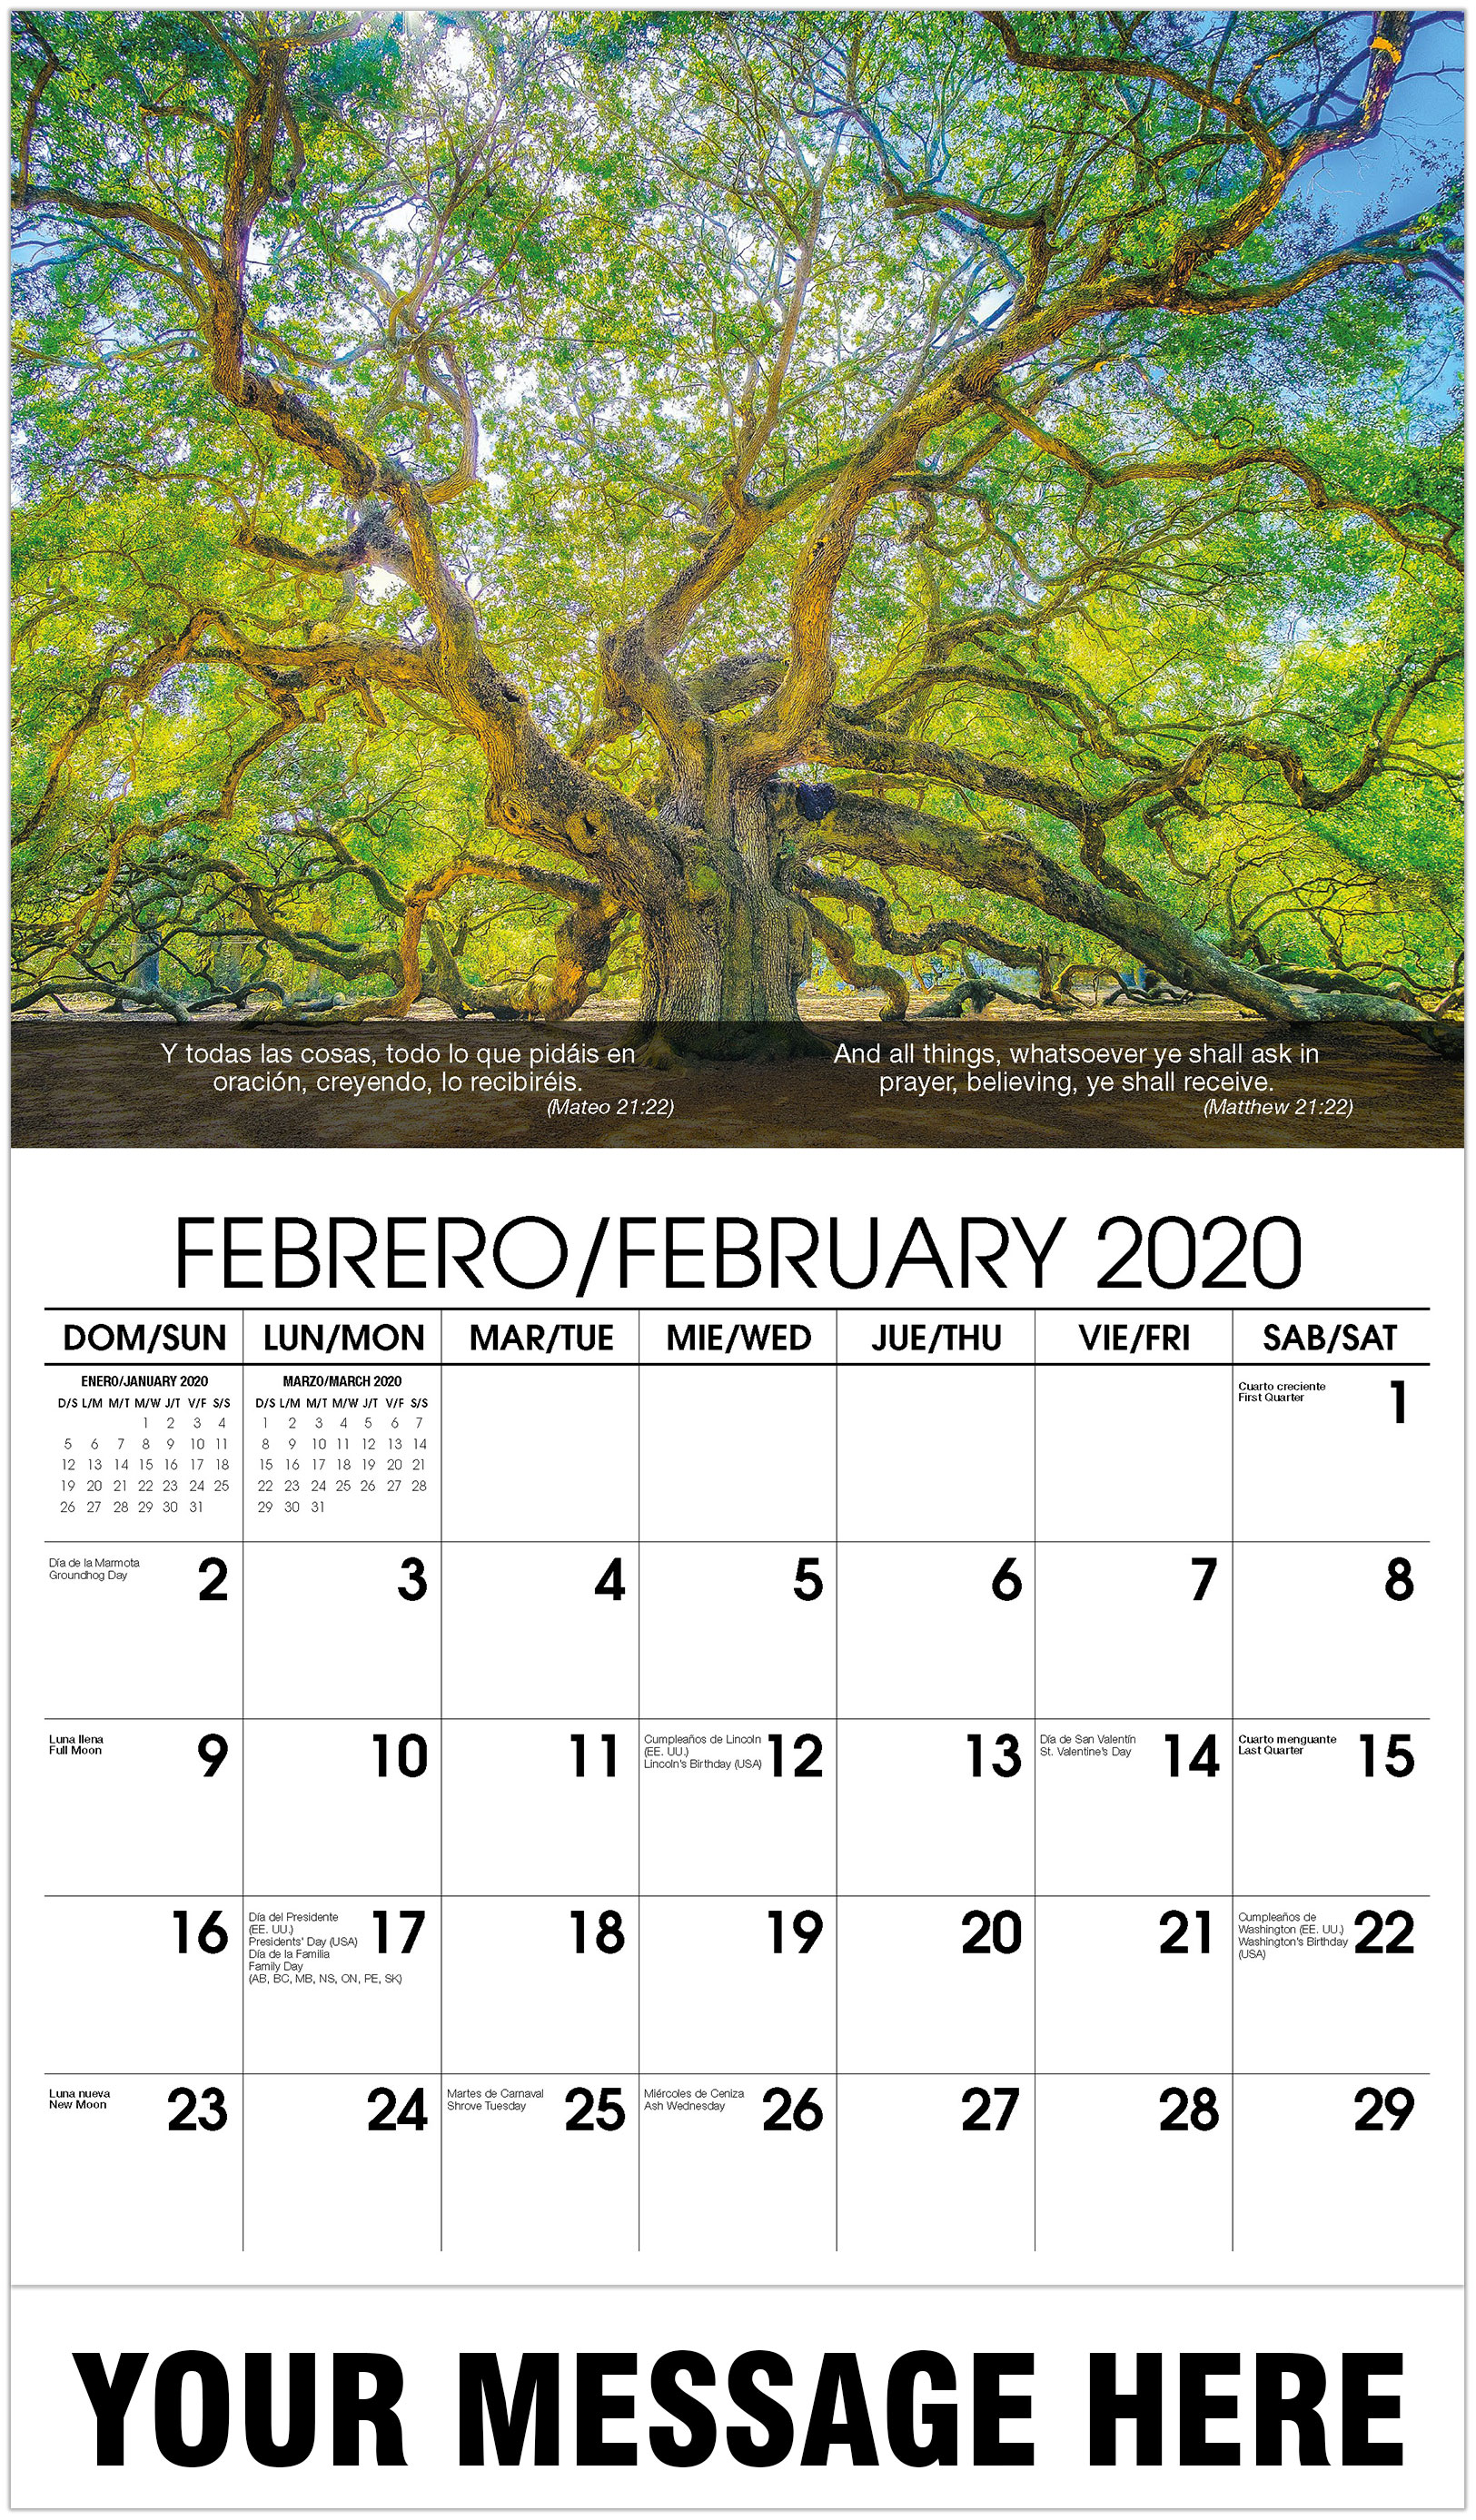 2020 Bilingual Promo Calendar - Tree - February